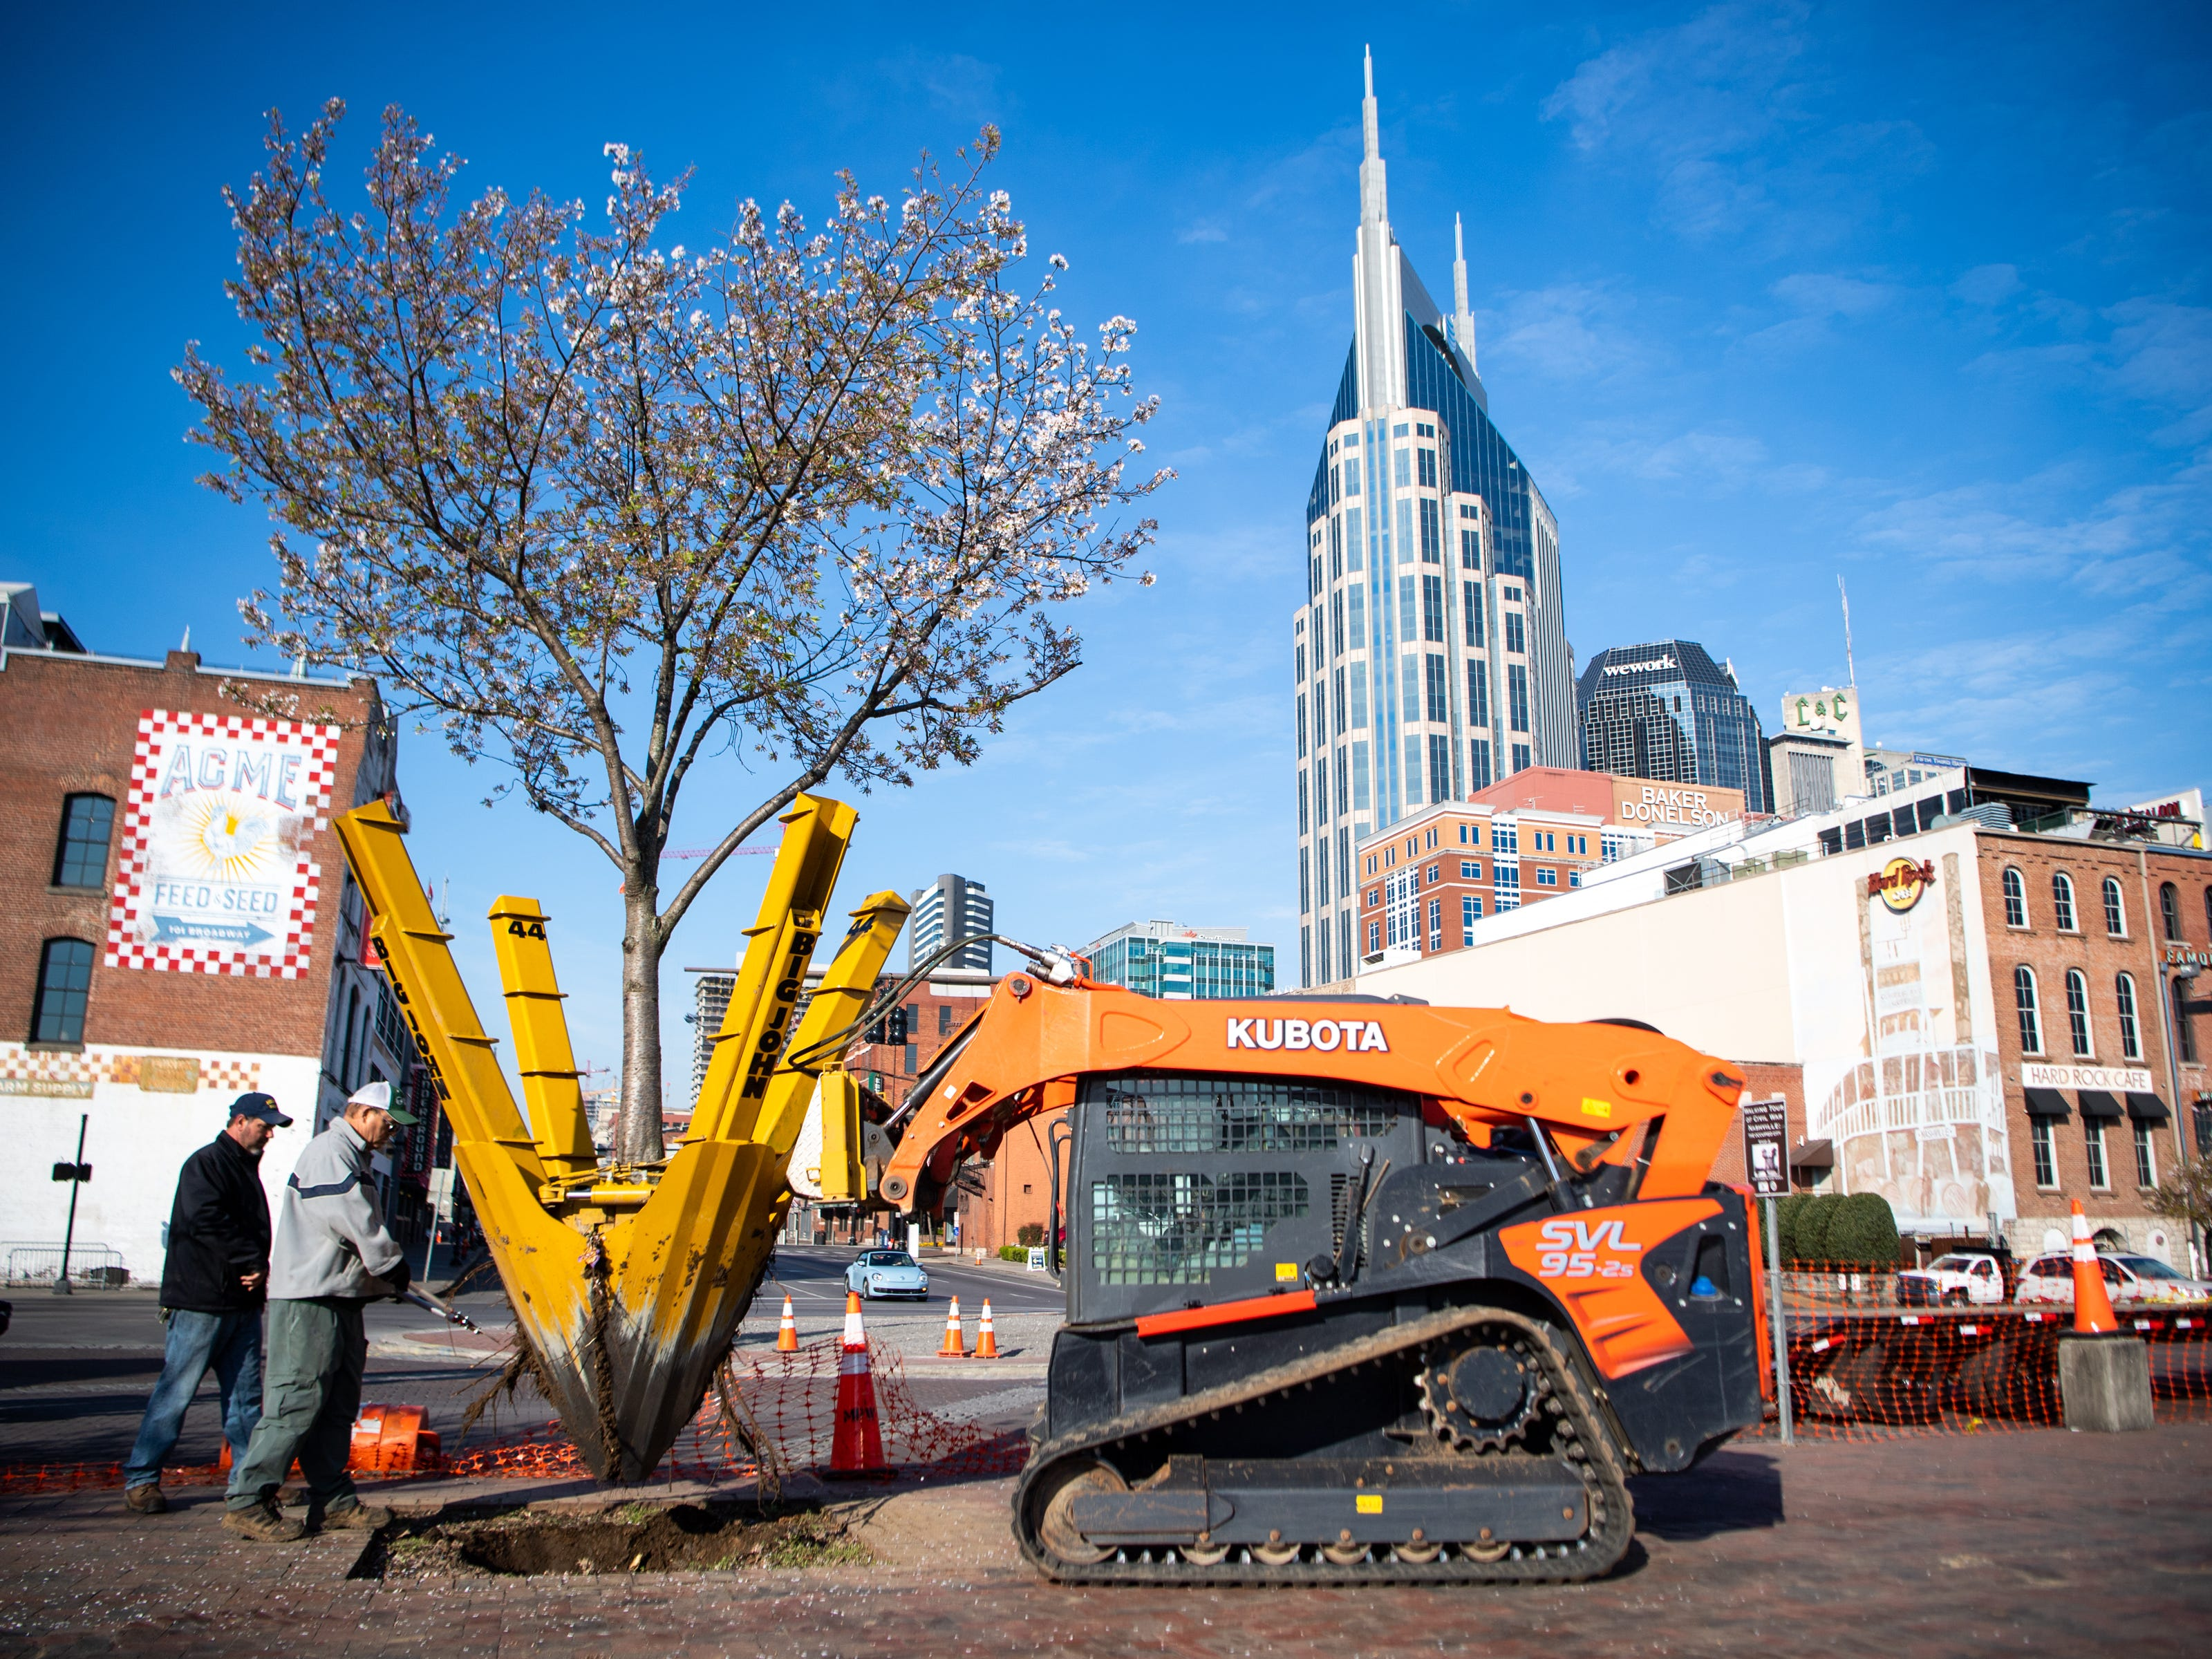 Metro Parks and Recreation workers relocate a Yoshino Cherry tree along the riverfront Wednesday, April 3, 2019, in Nashville, Tenn. The City is transplanting the trees after protest of chopping the trees down to make room for a giant stage for the upcoming NFL Draft.